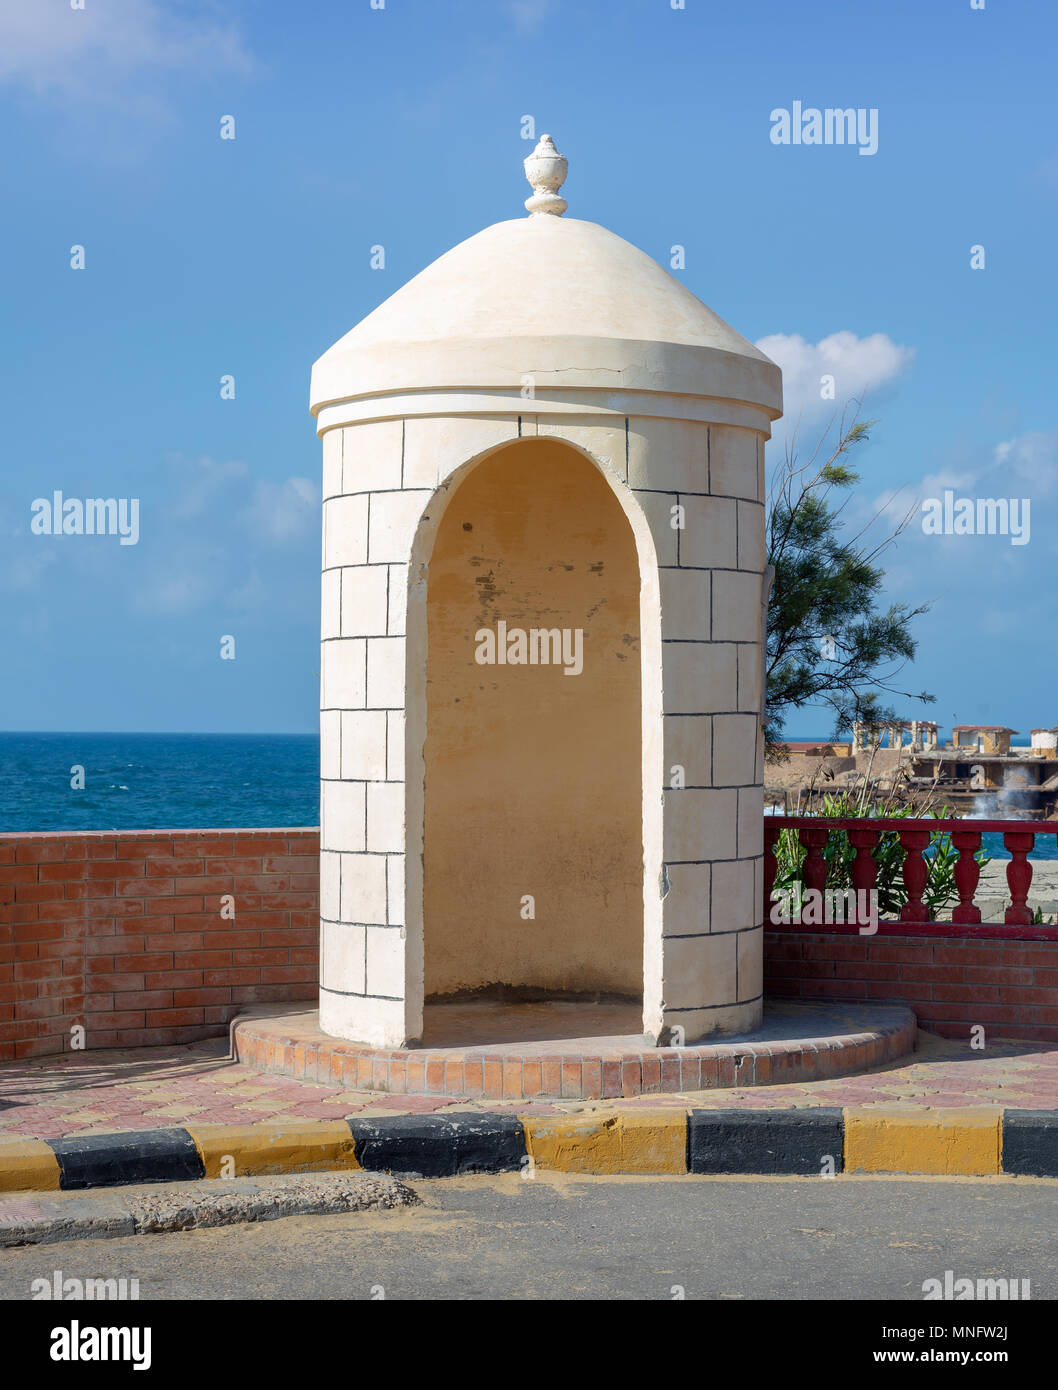 Old guard booth of white bricks with Mediterranean Sea, clear sky, and tree in the background located at Montaza public park, Alexandria, Egypt - Stock Image